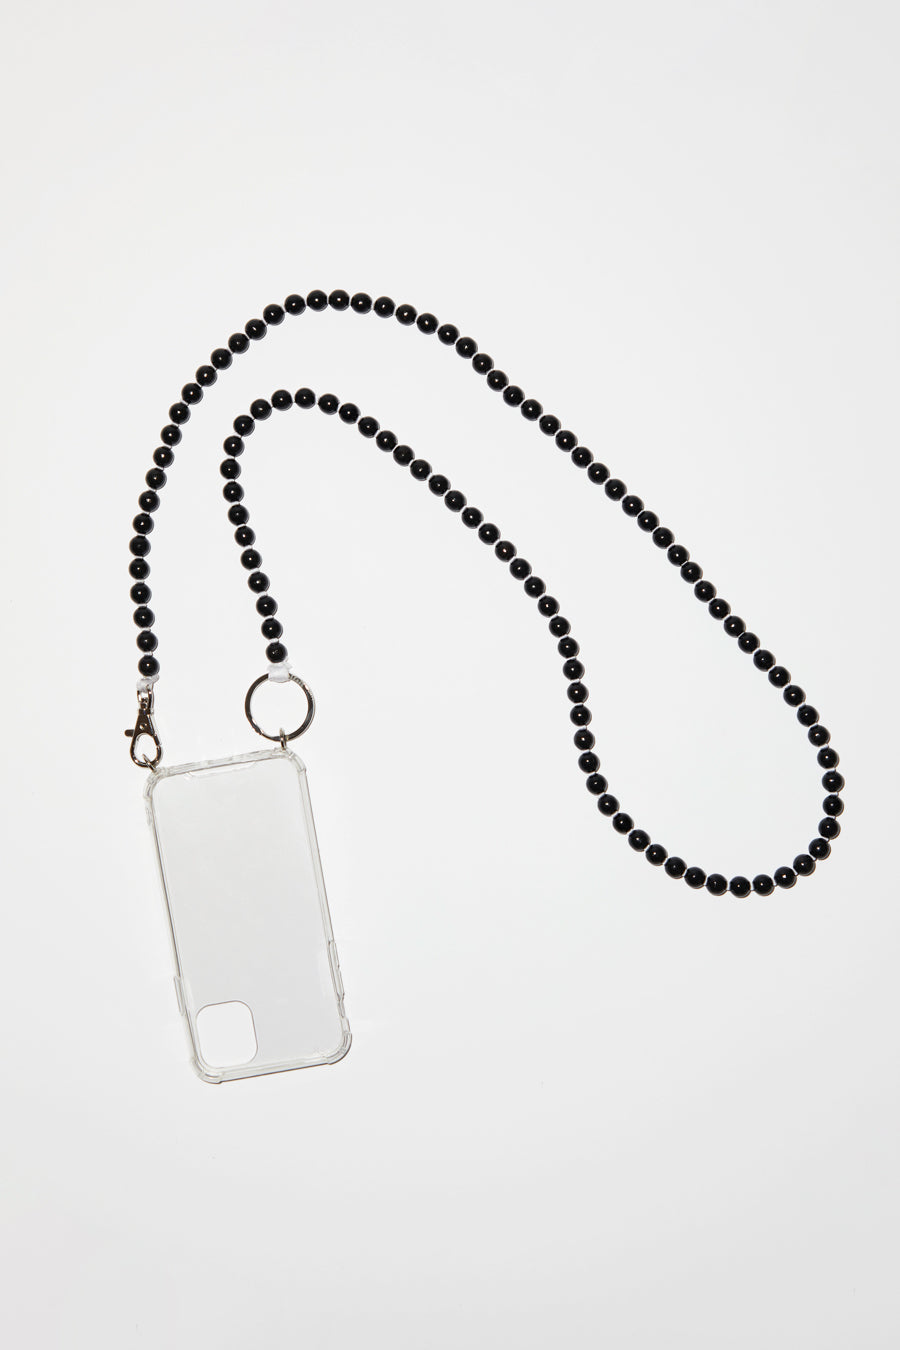 Ina Seifart Handykette Iphone Necklace in Black with White Thread